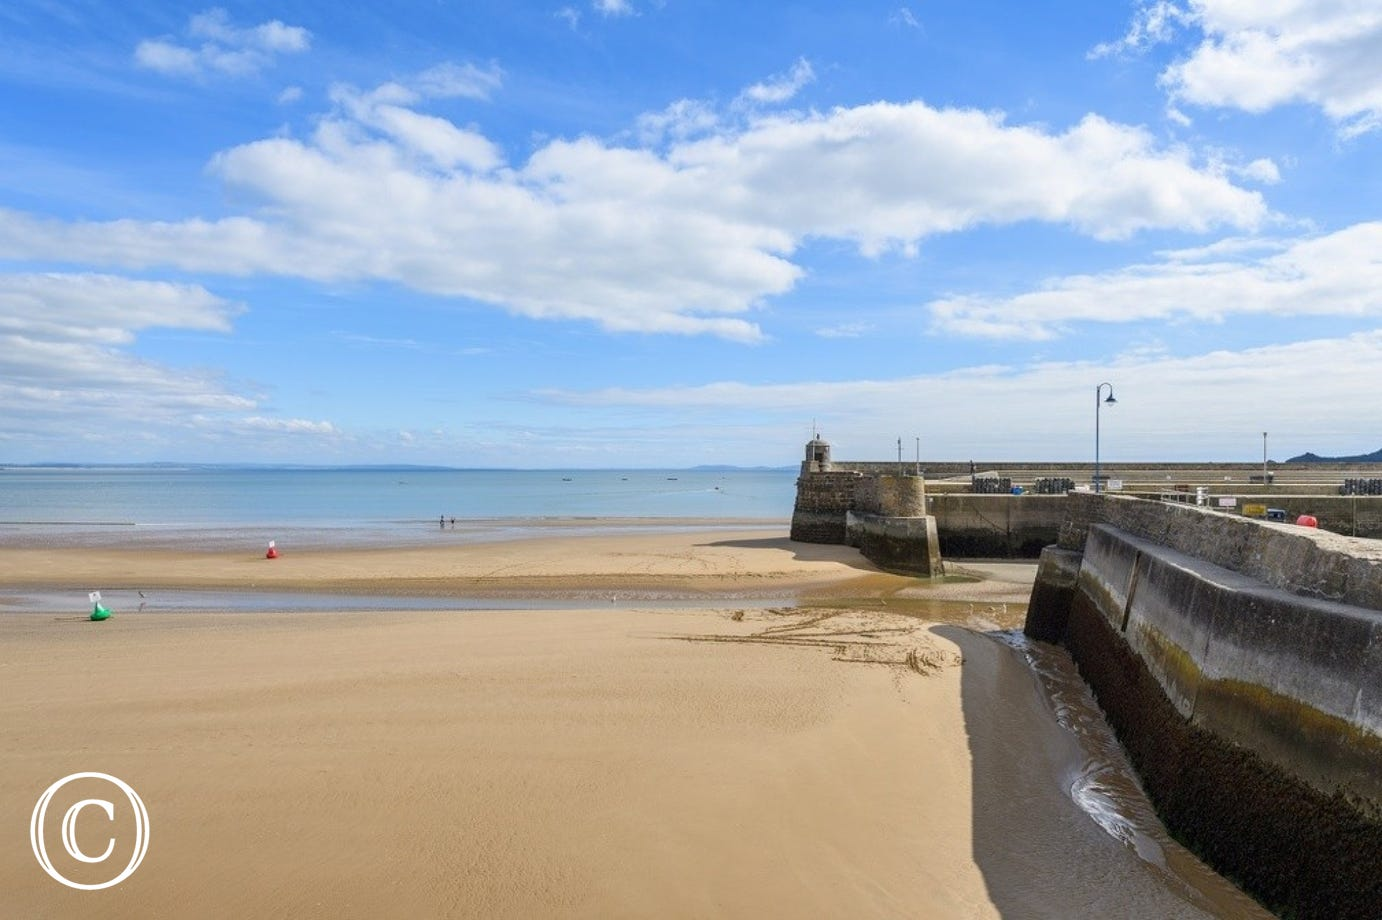 A view of Saundersfoot beach with the tide out.  A lovely expanse of sand.